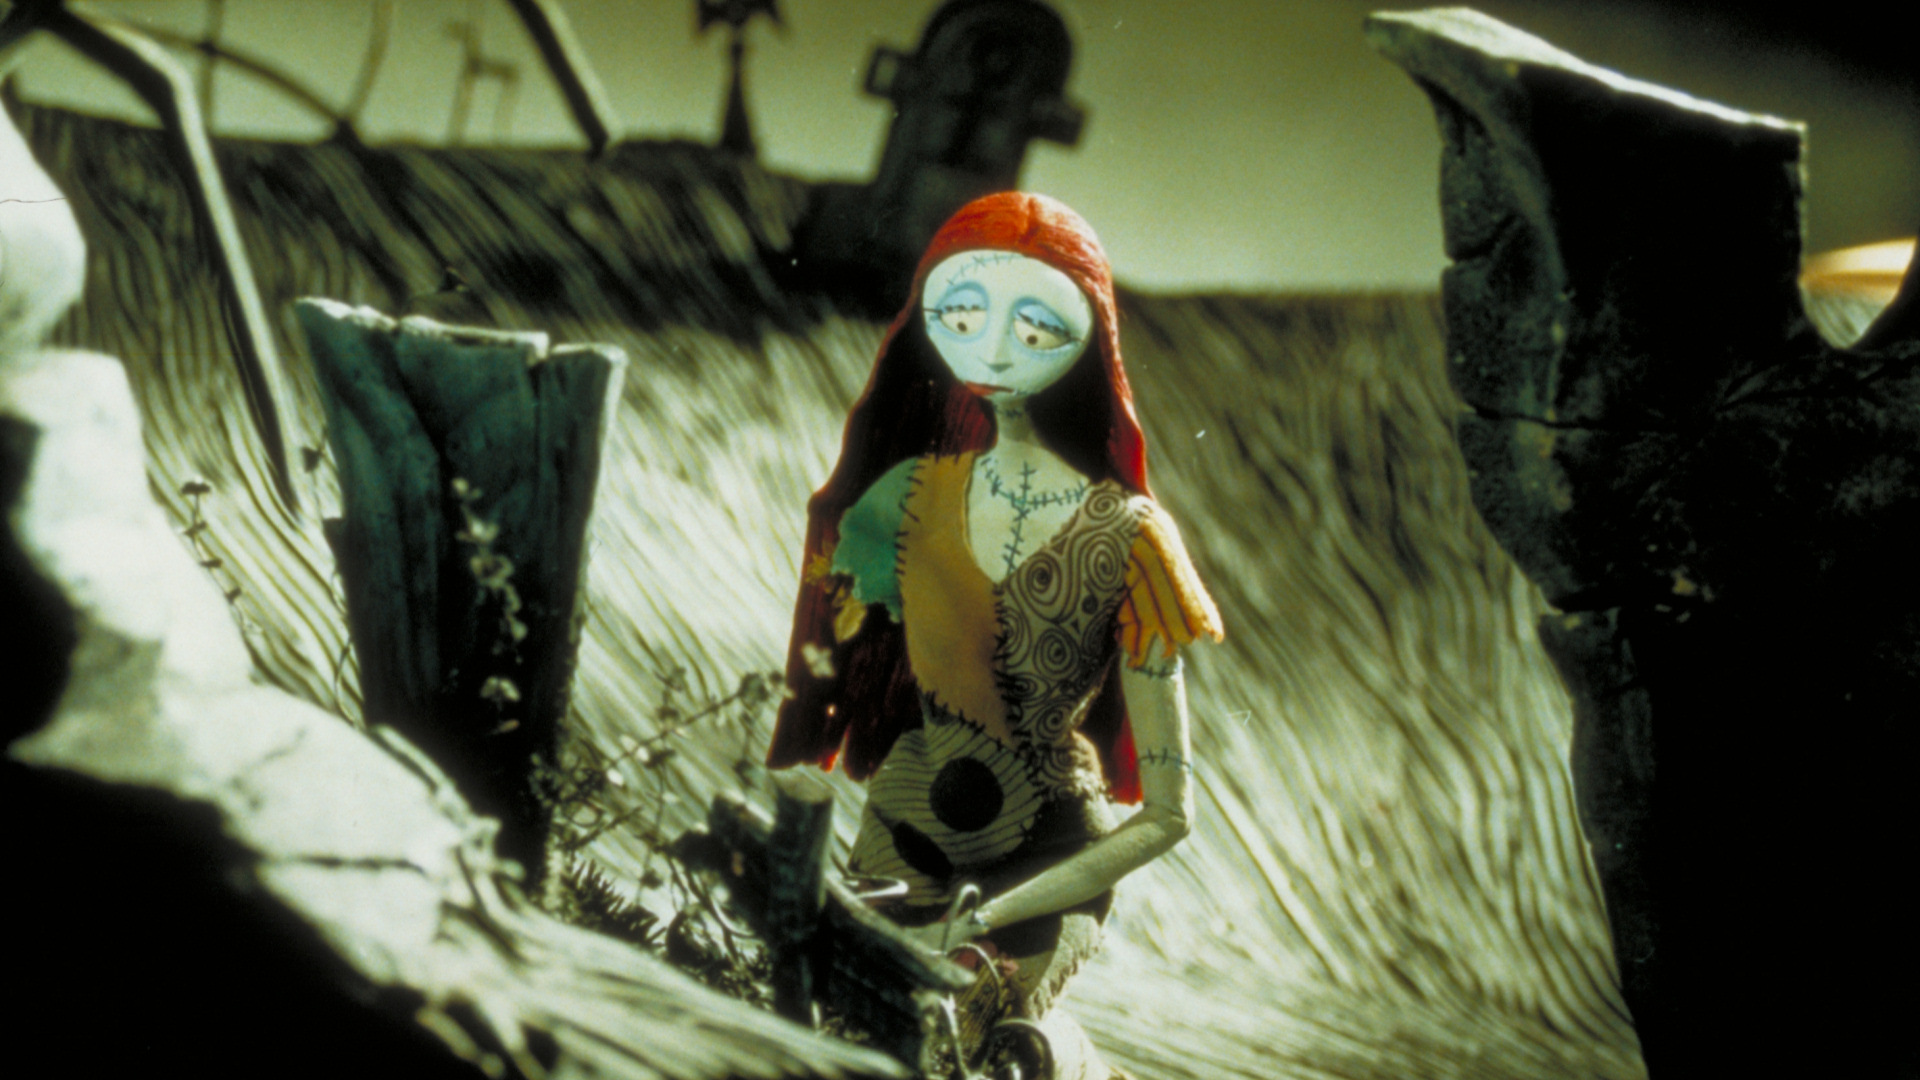 Movies The Nightmare Before HD Wallpaper